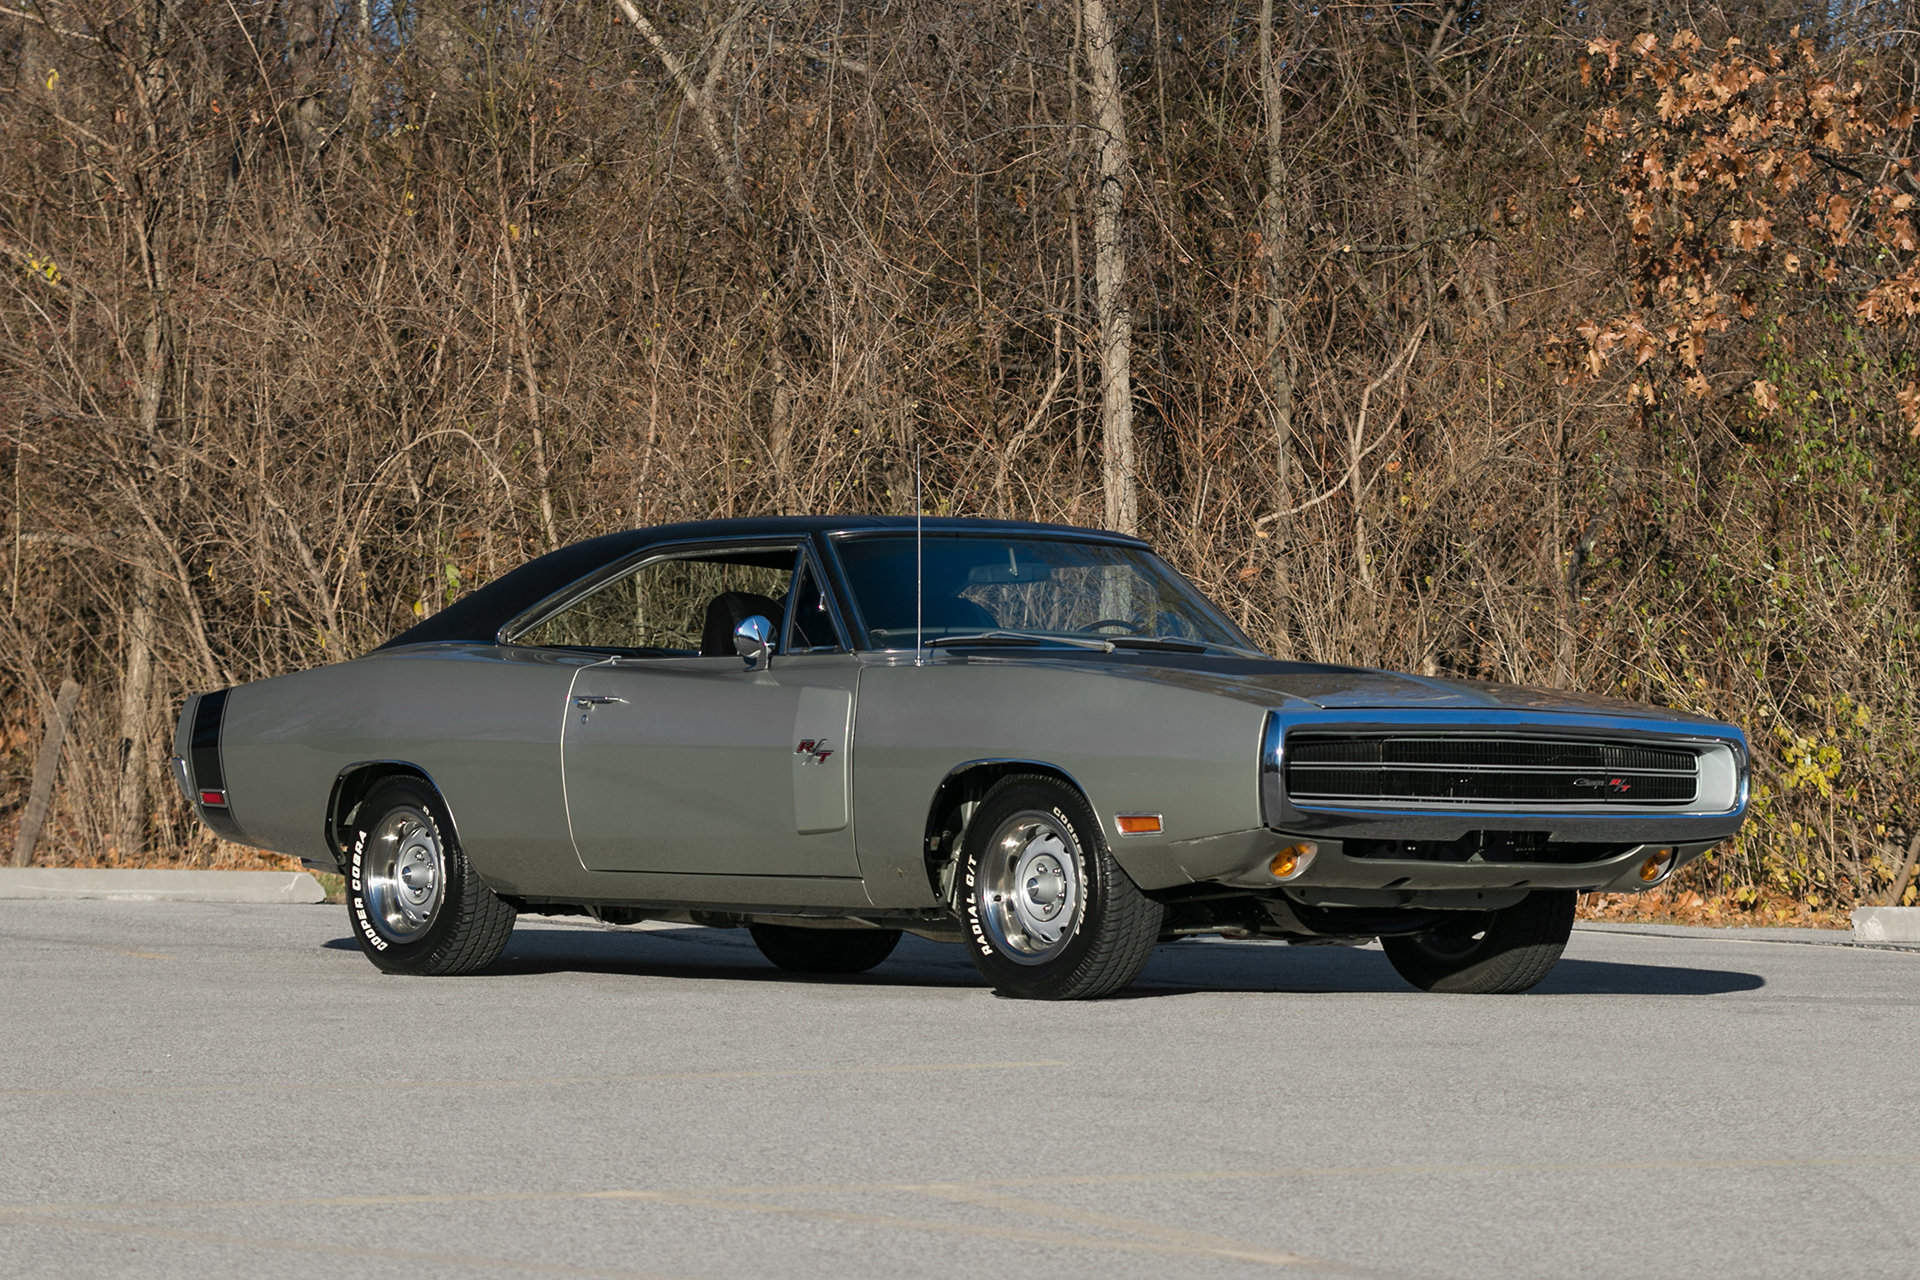 1970 dodge charger r t for sale 75521 mcg. Black Bedroom Furniture Sets. Home Design Ideas